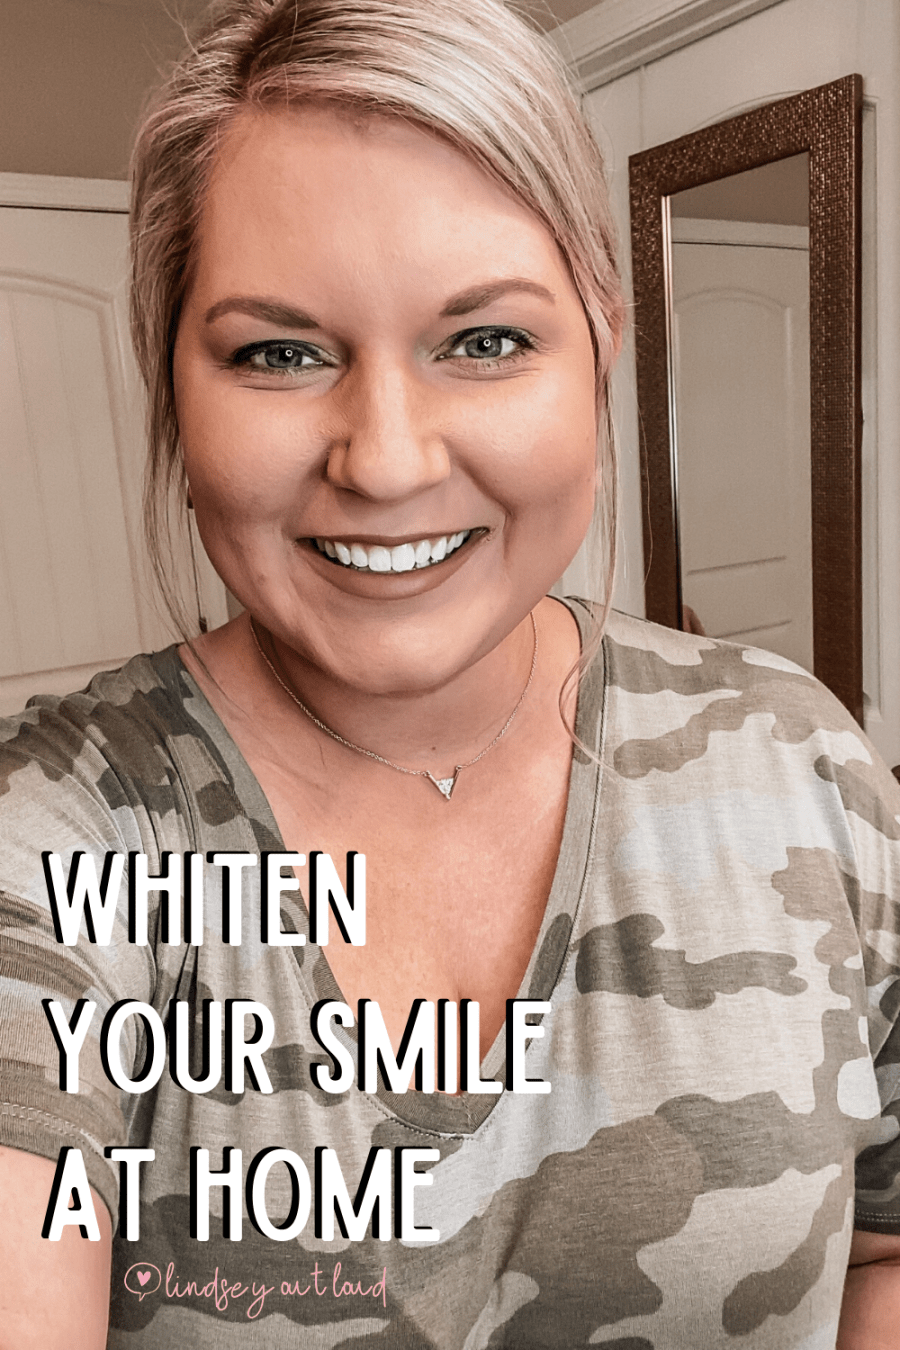 My New At Home Teeth Whitening Routine (That's Easy, Effective + Affordable)